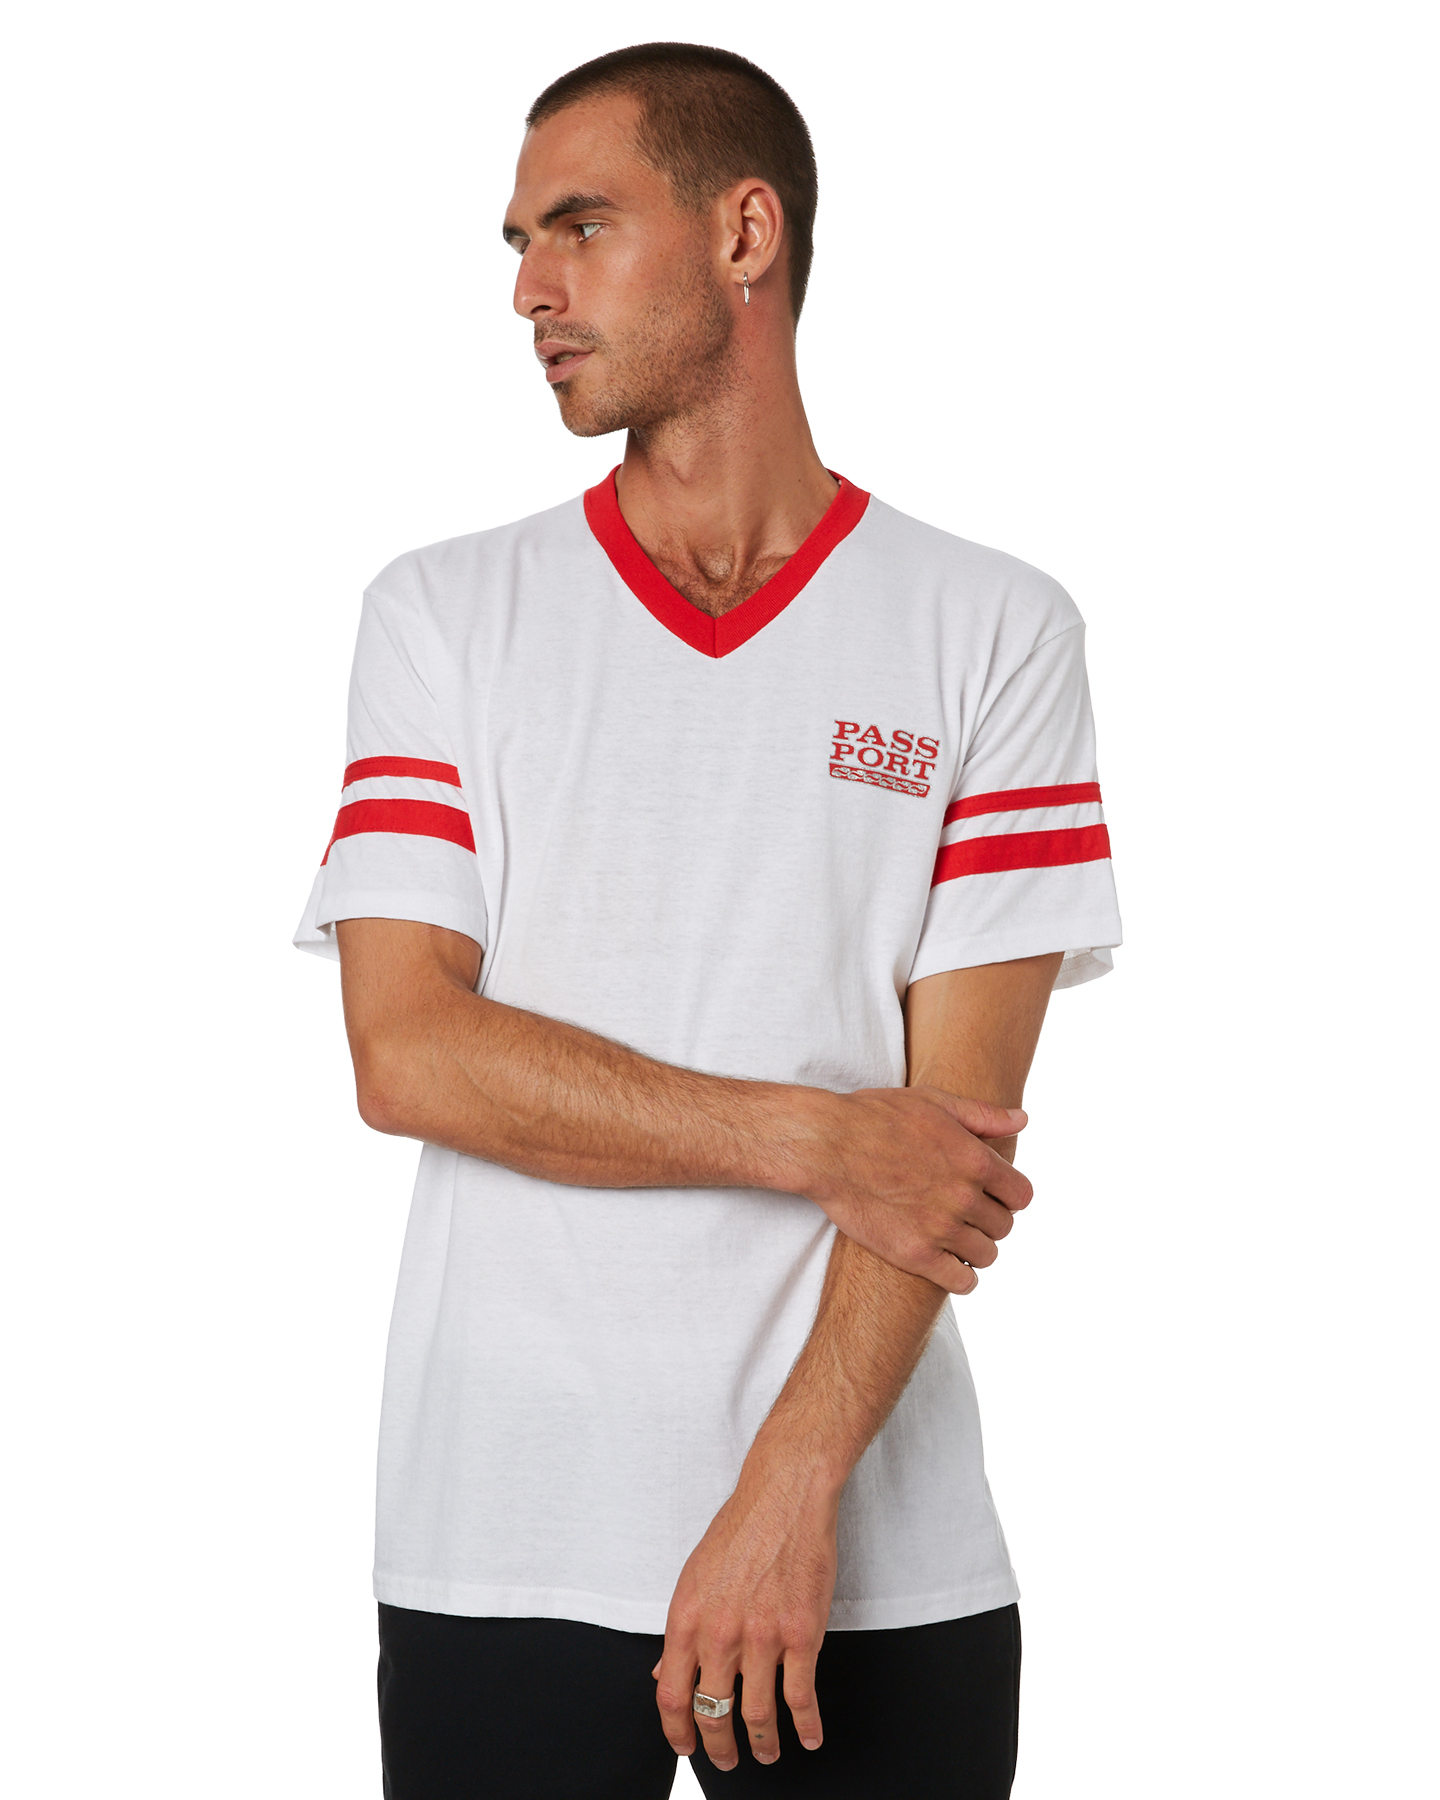 Pass Port Auto Stripes Mens Jersey White Red